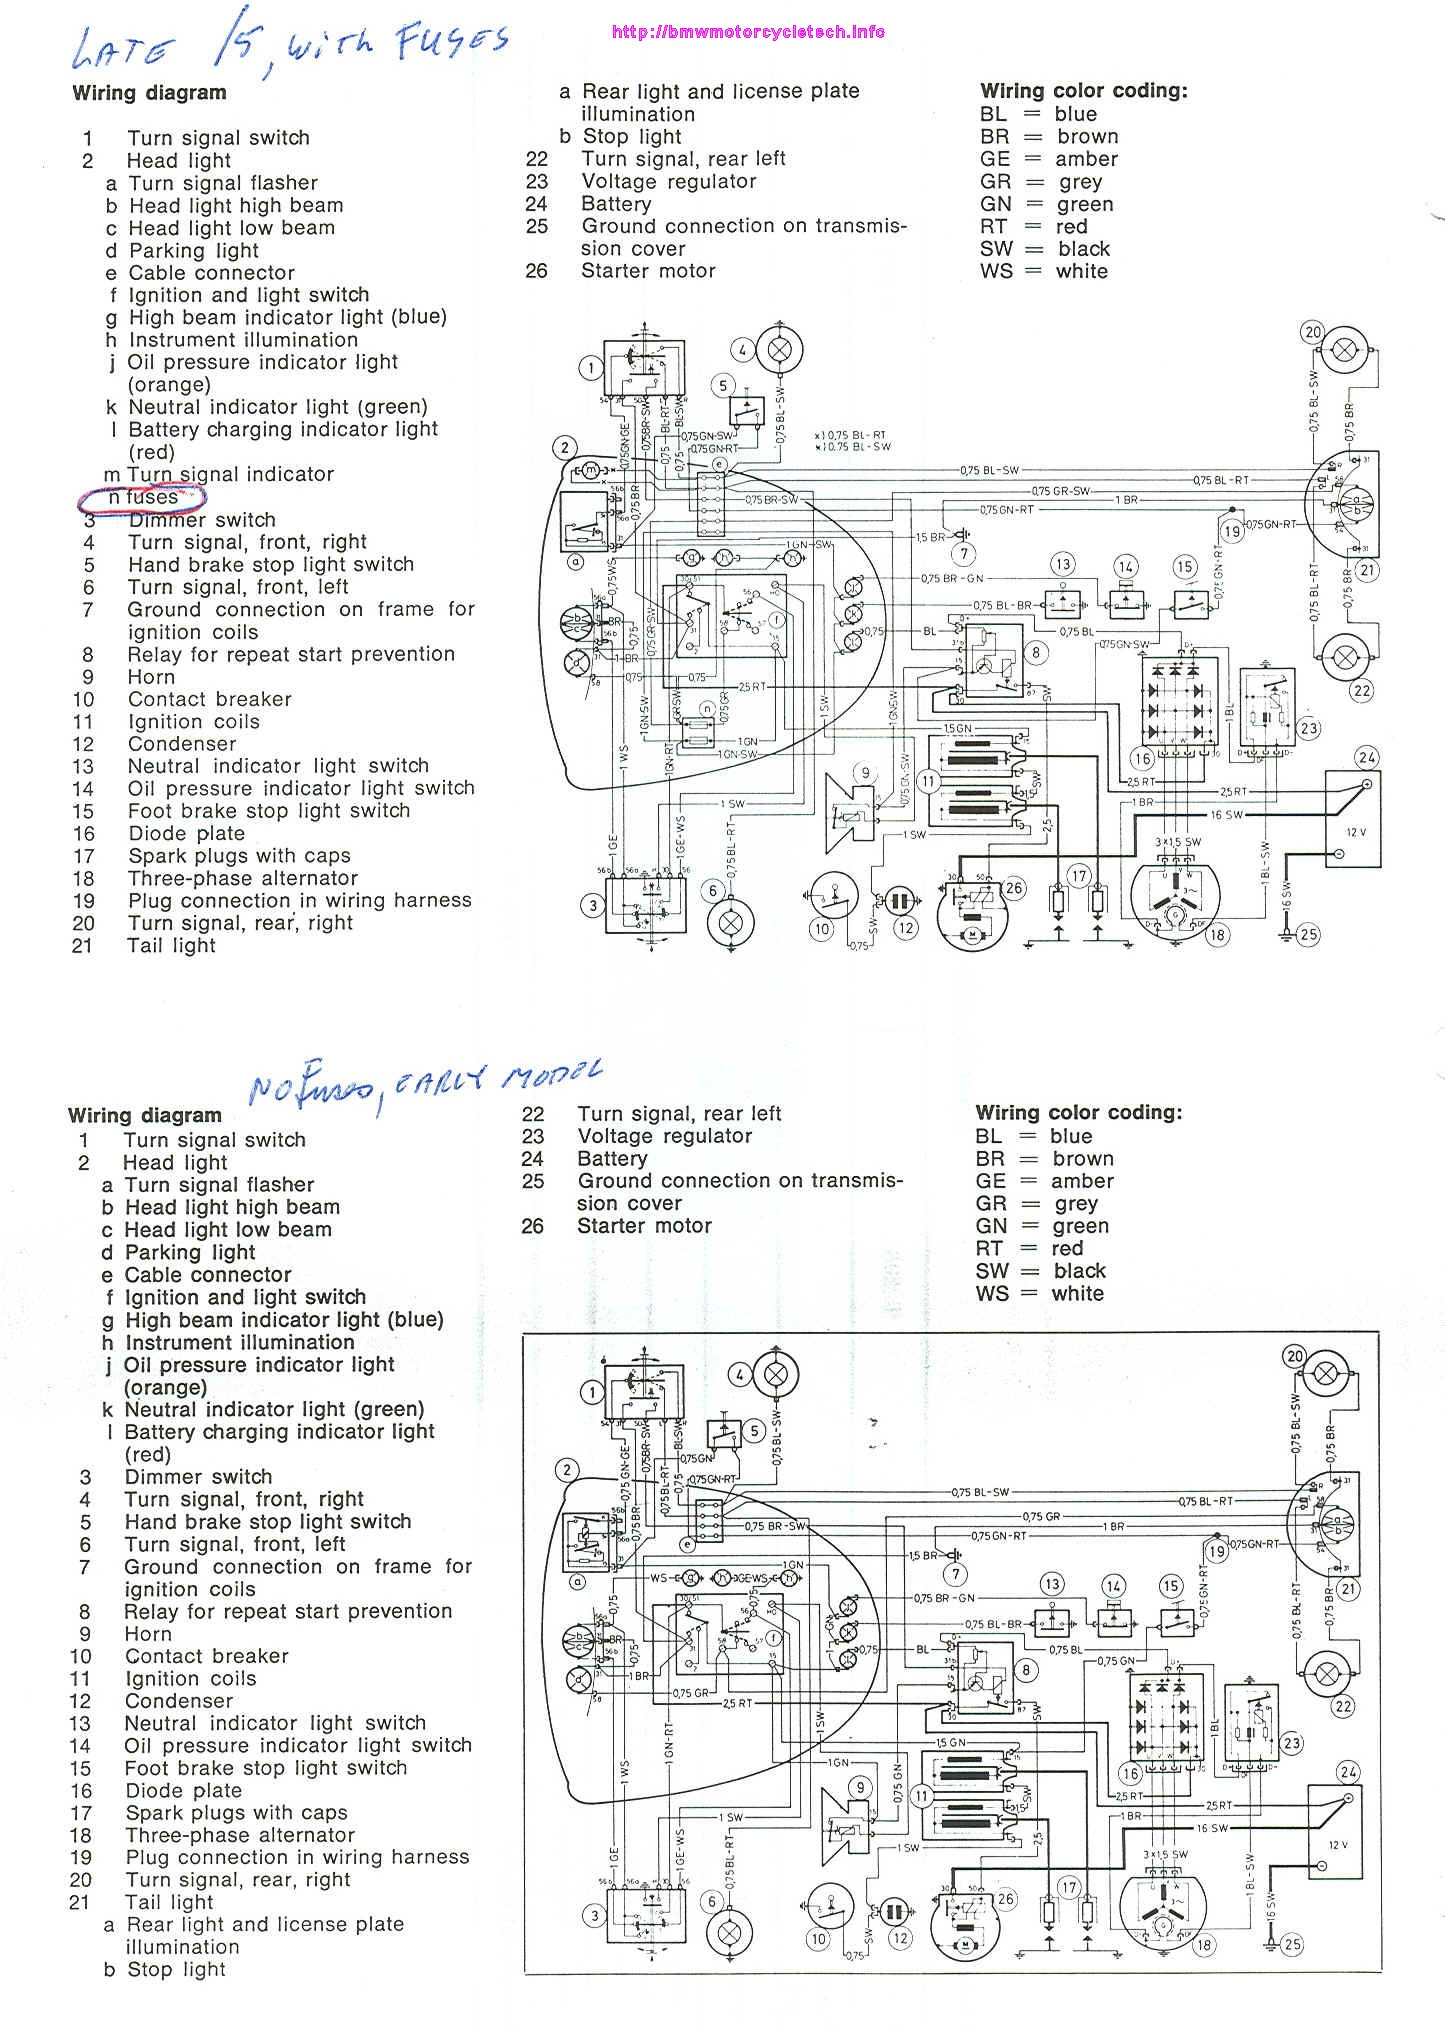 Snowbum Bmw Motorcycle Technical Articles Maintenance Snobum Sub Zero Ice Maker Wiring Diagram Schematic Diagrams For Both Early And Late 5 Model Had No Fuses Set Your Browser To Expand The Image As Needed It Will Be Cleanly Displayed